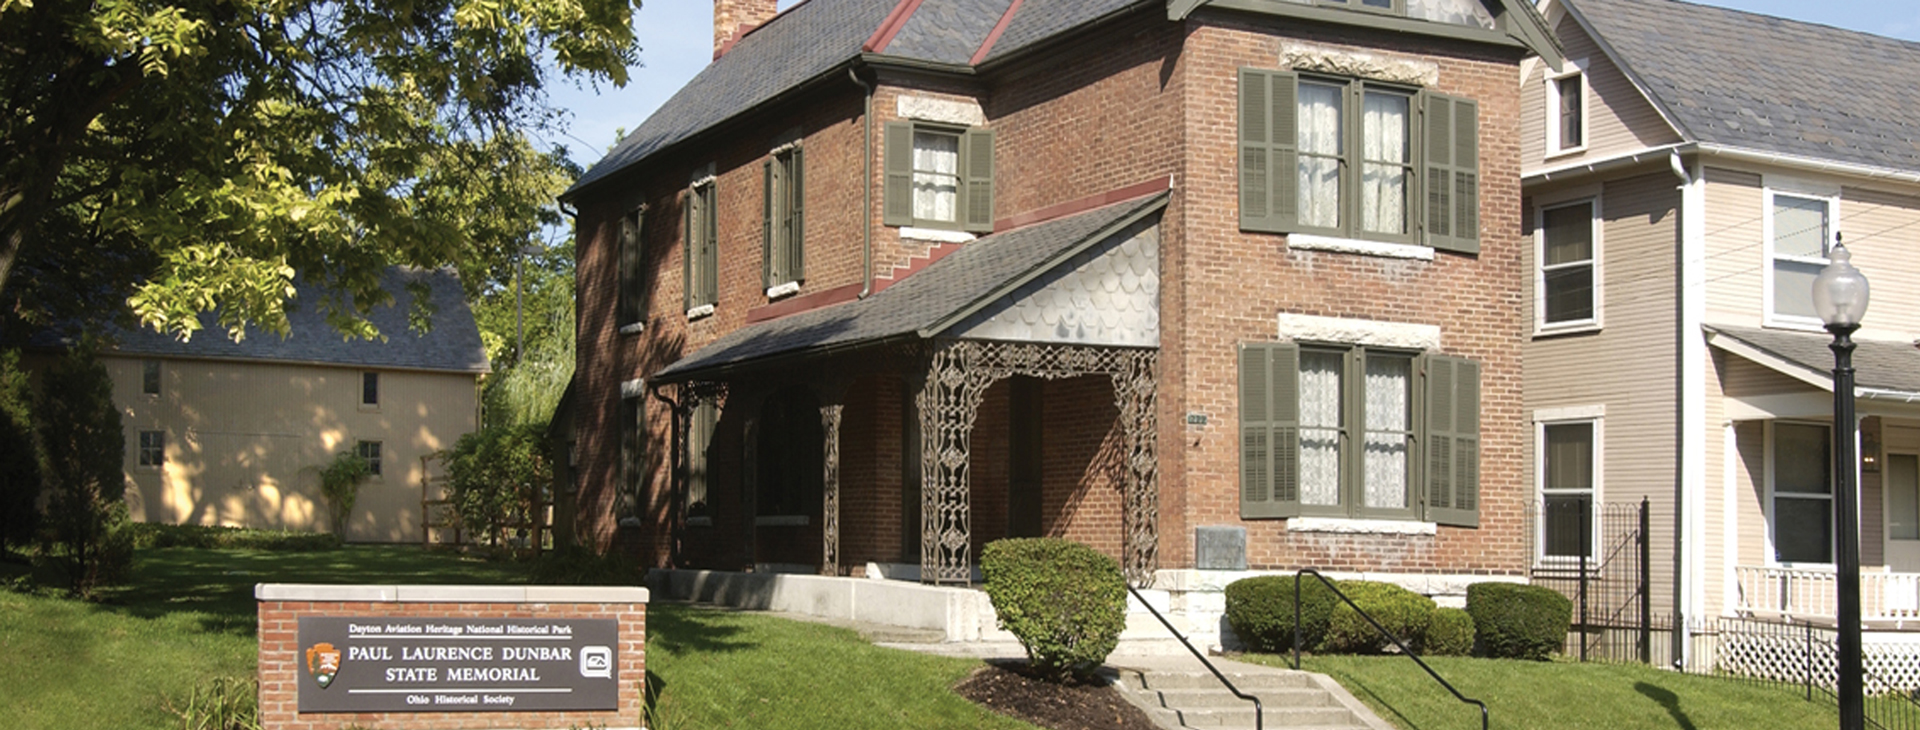 Paul laurence dunbar house historic site dayton history for House pictures website